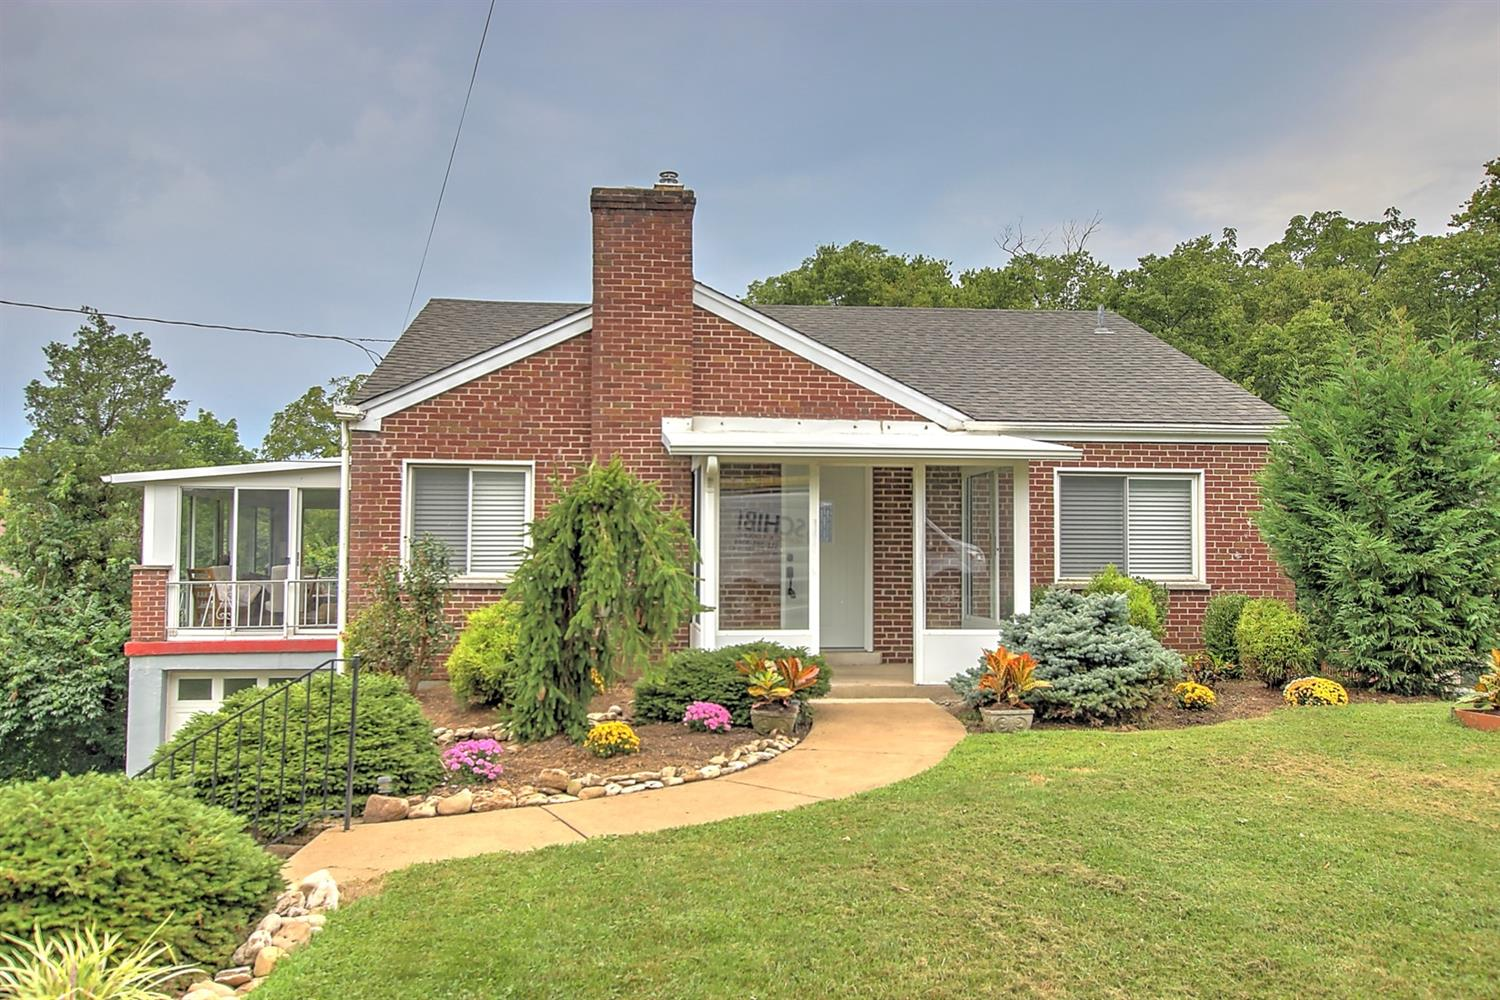 3527 West Fork Road, Green Twp, Ohio 45211, 3 Bedrooms Bedrooms, 5 Rooms Rooms,1 BathroomBathrooms,Single Family Residence,For Sale,West Fork,1713380